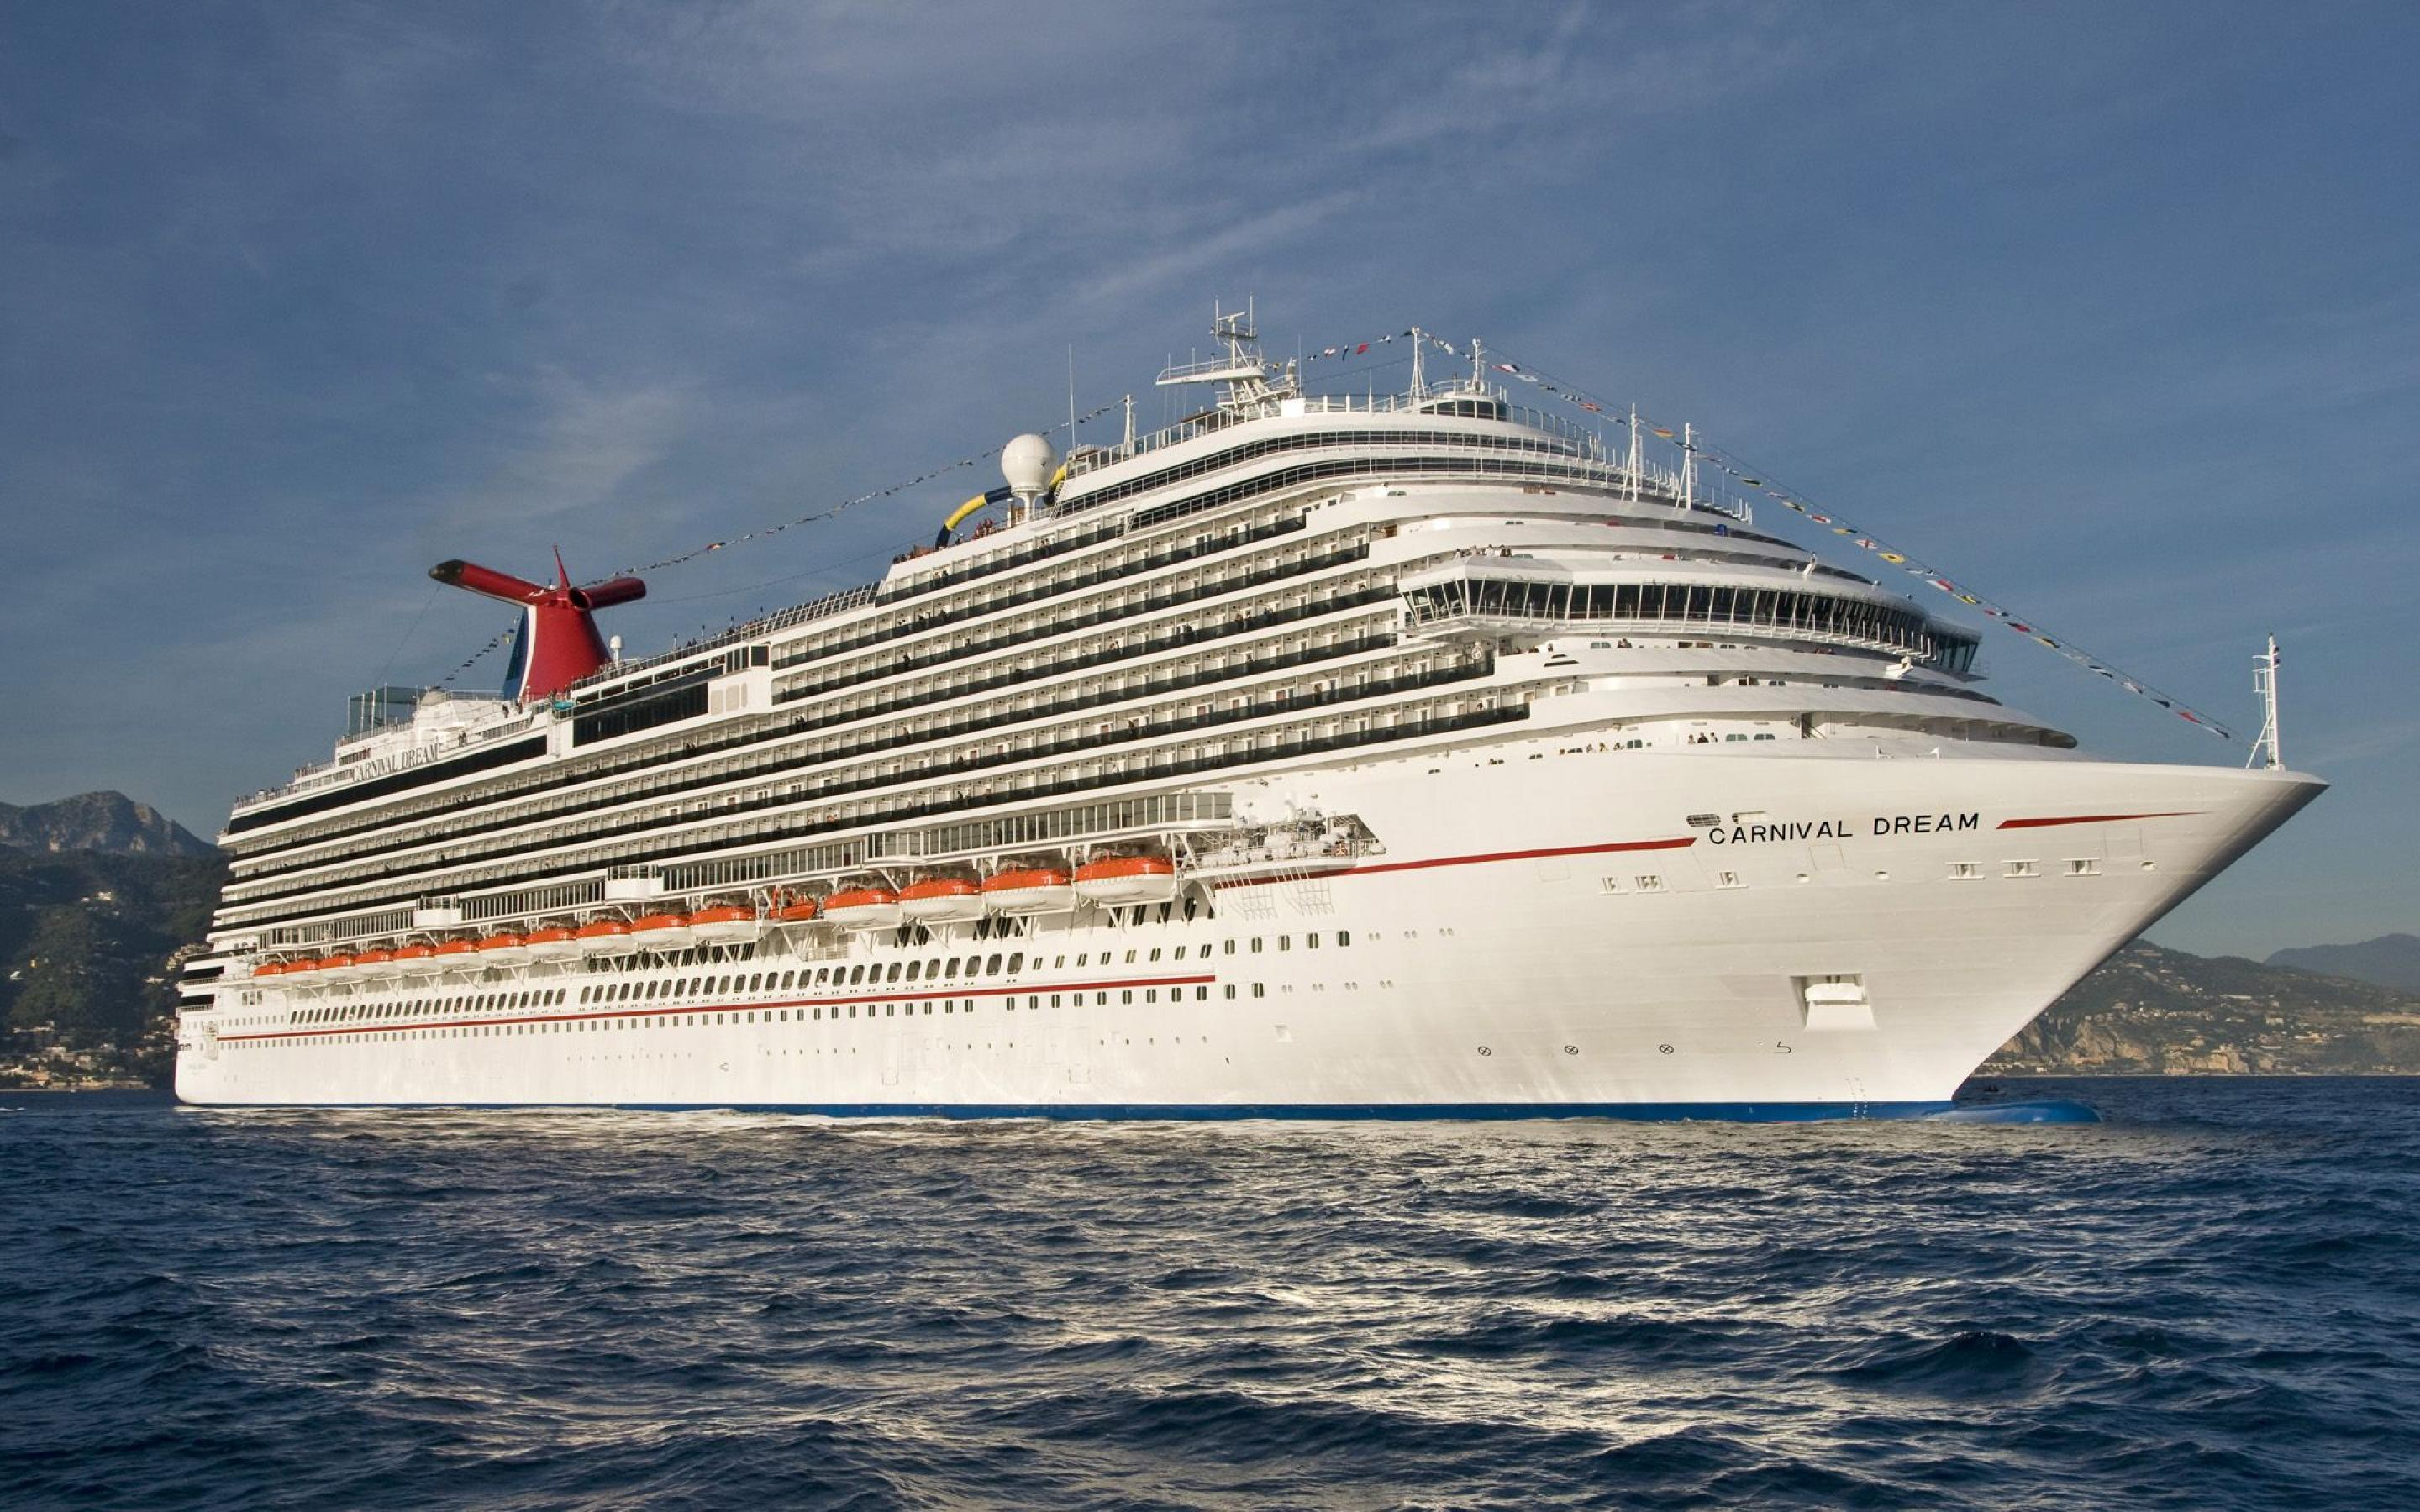 Cruise Ship Wallpaper Carnival Dream Cruise Ship Wallpaper Wallpaper 2880x1800